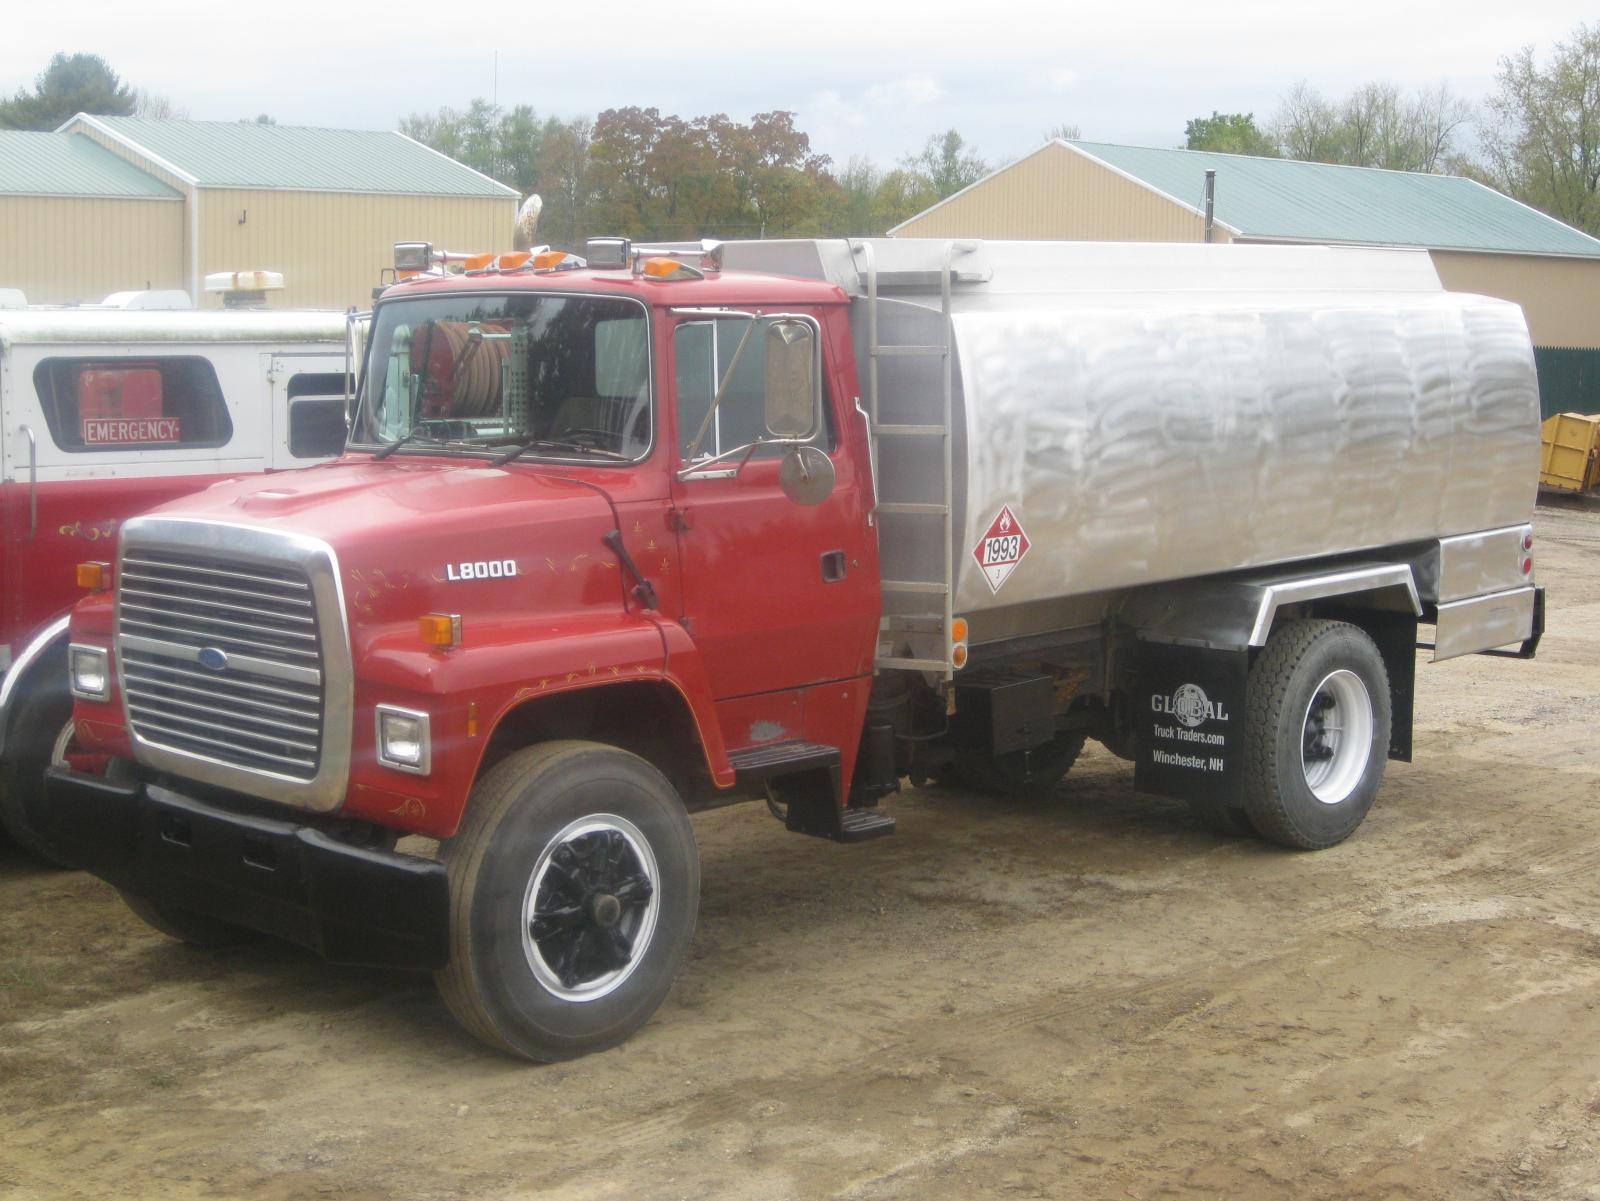 Mack Trucks For Sale >> 1995 Ford L-8000 oil delivery truck $15,499 - Trucks for ...